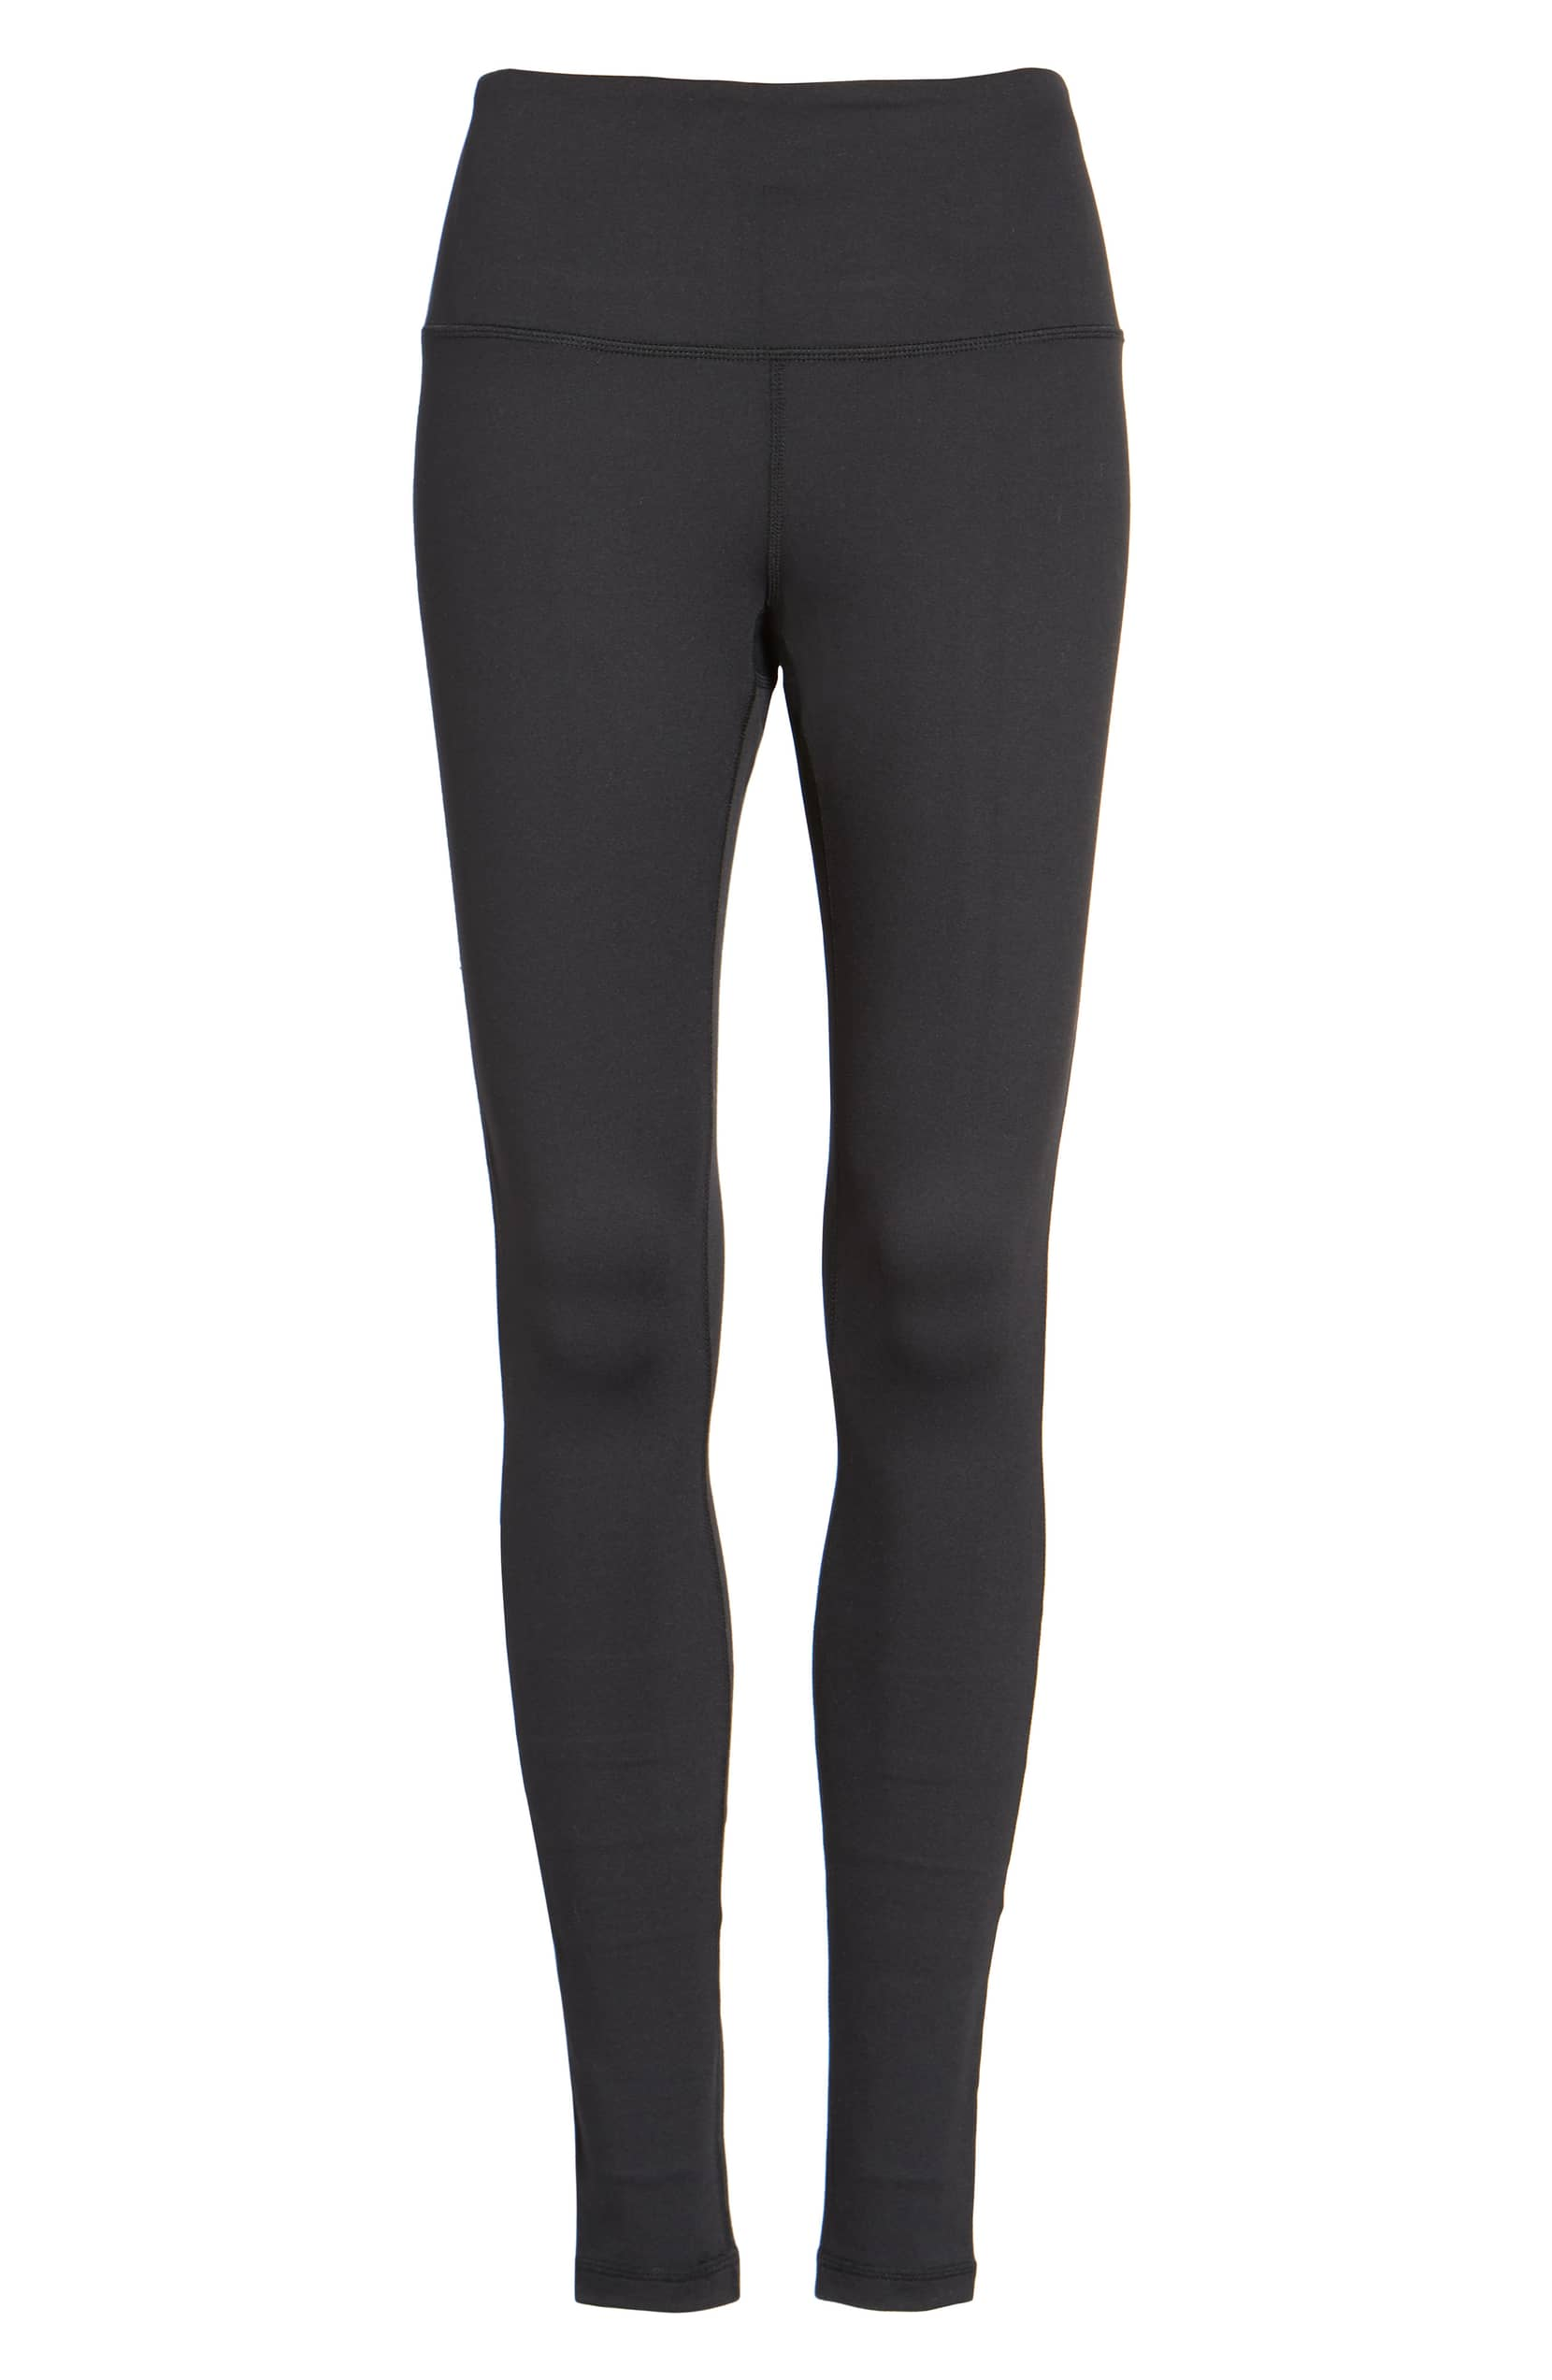 a6c5678965318 Best Black Leggings - Reviews On Top Brands & Styles